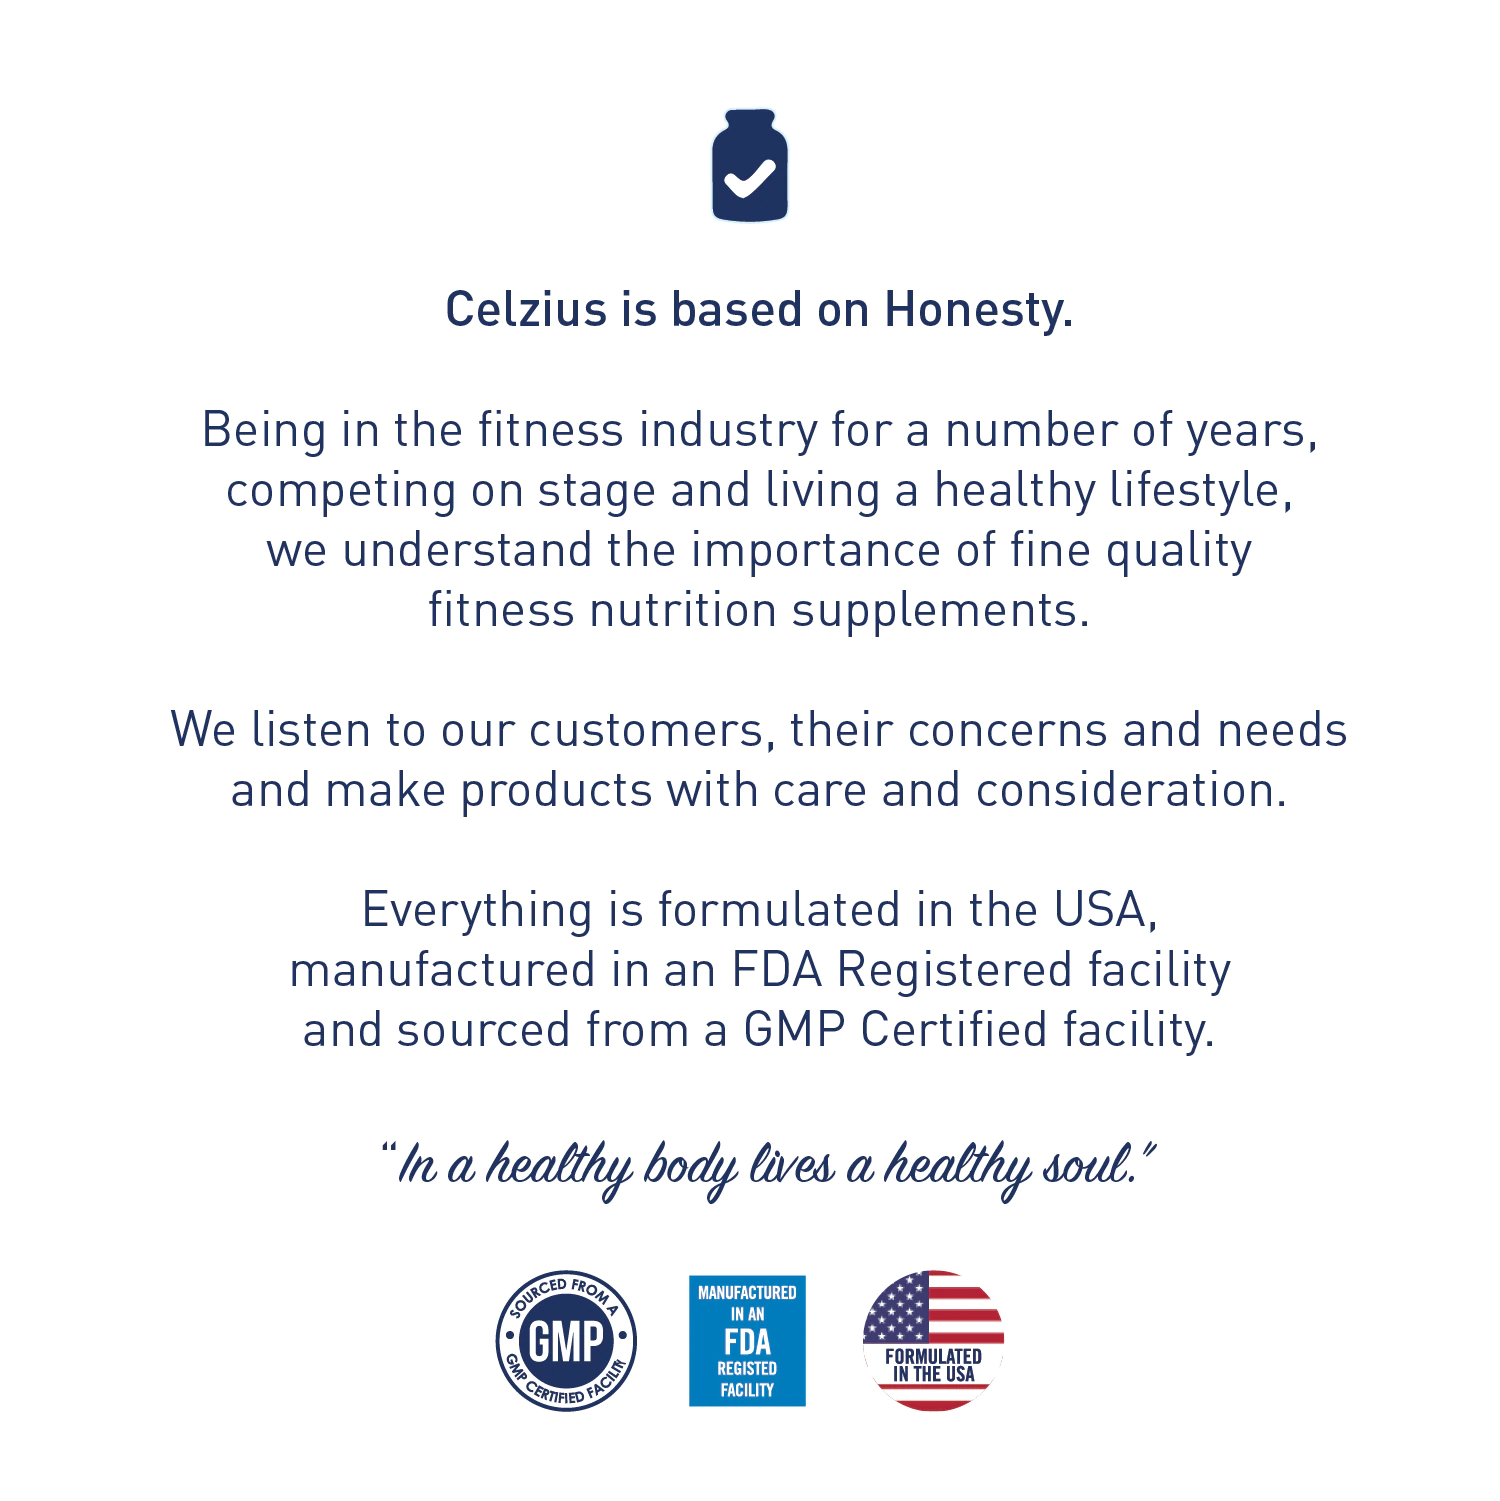 Celzius is based on Honesty...